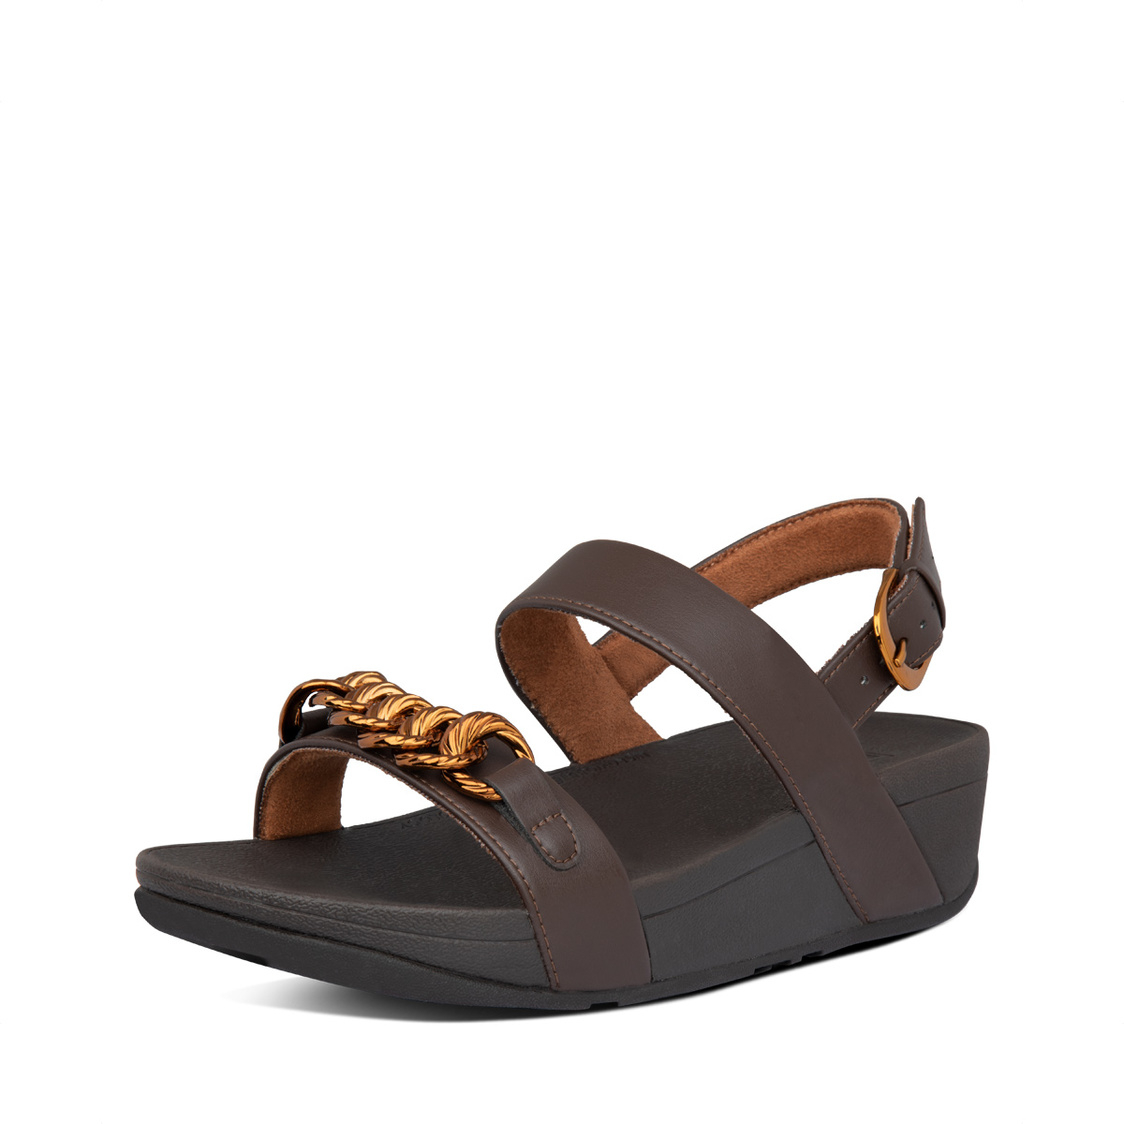 Fitflop Lottie Chain Back-Strap Sandals Chocolate Brown